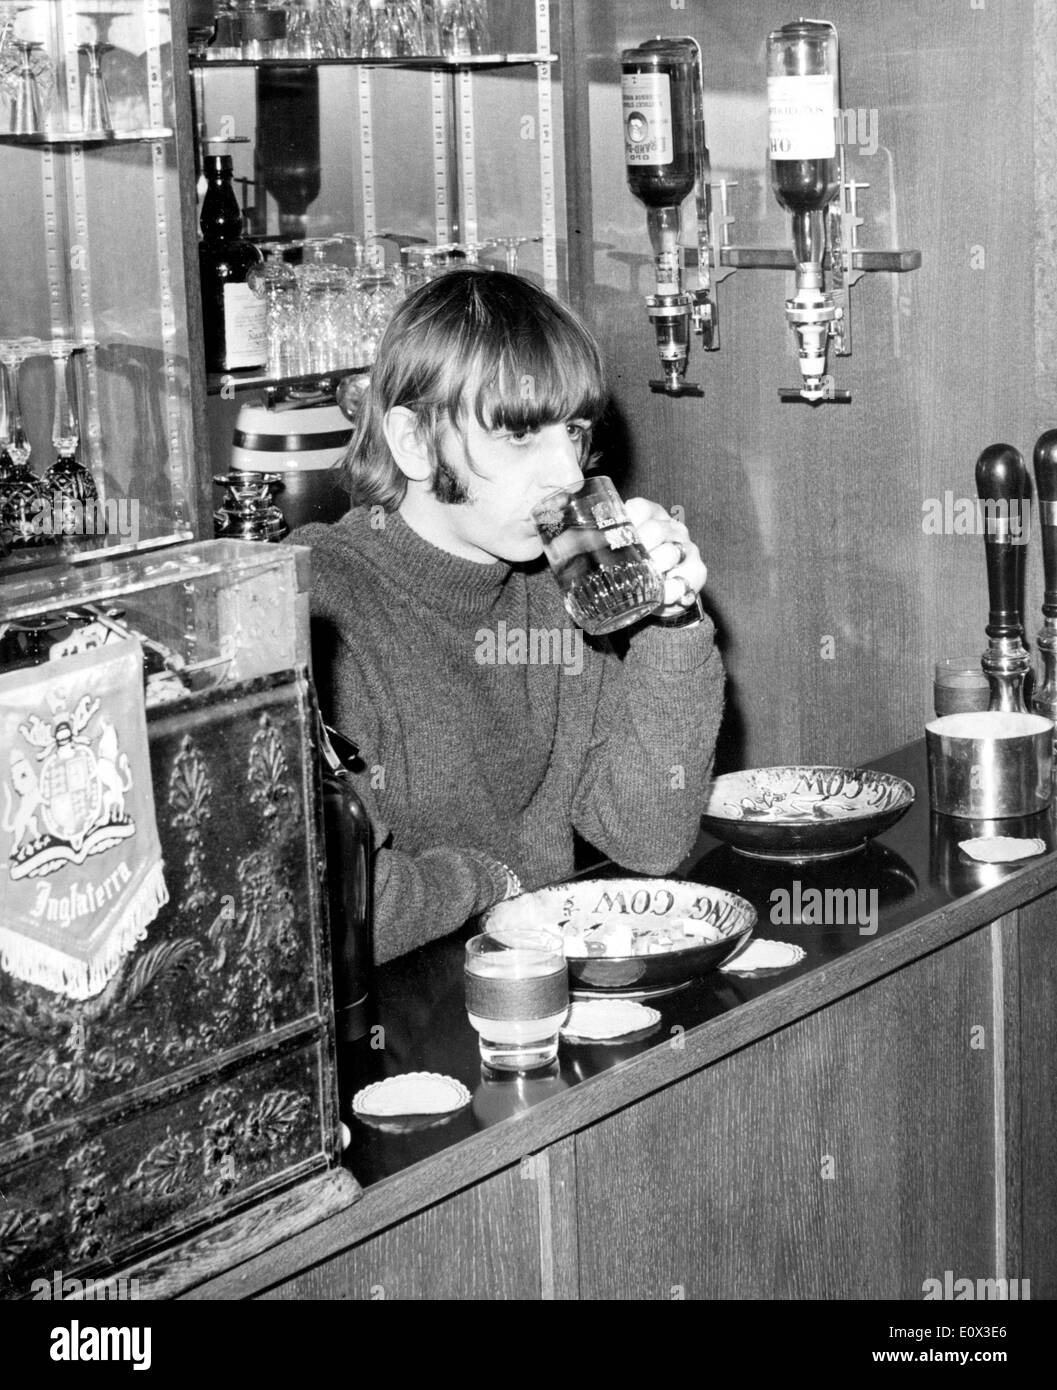 The Beatles' Ringo Starr at his house bar - Stock Image